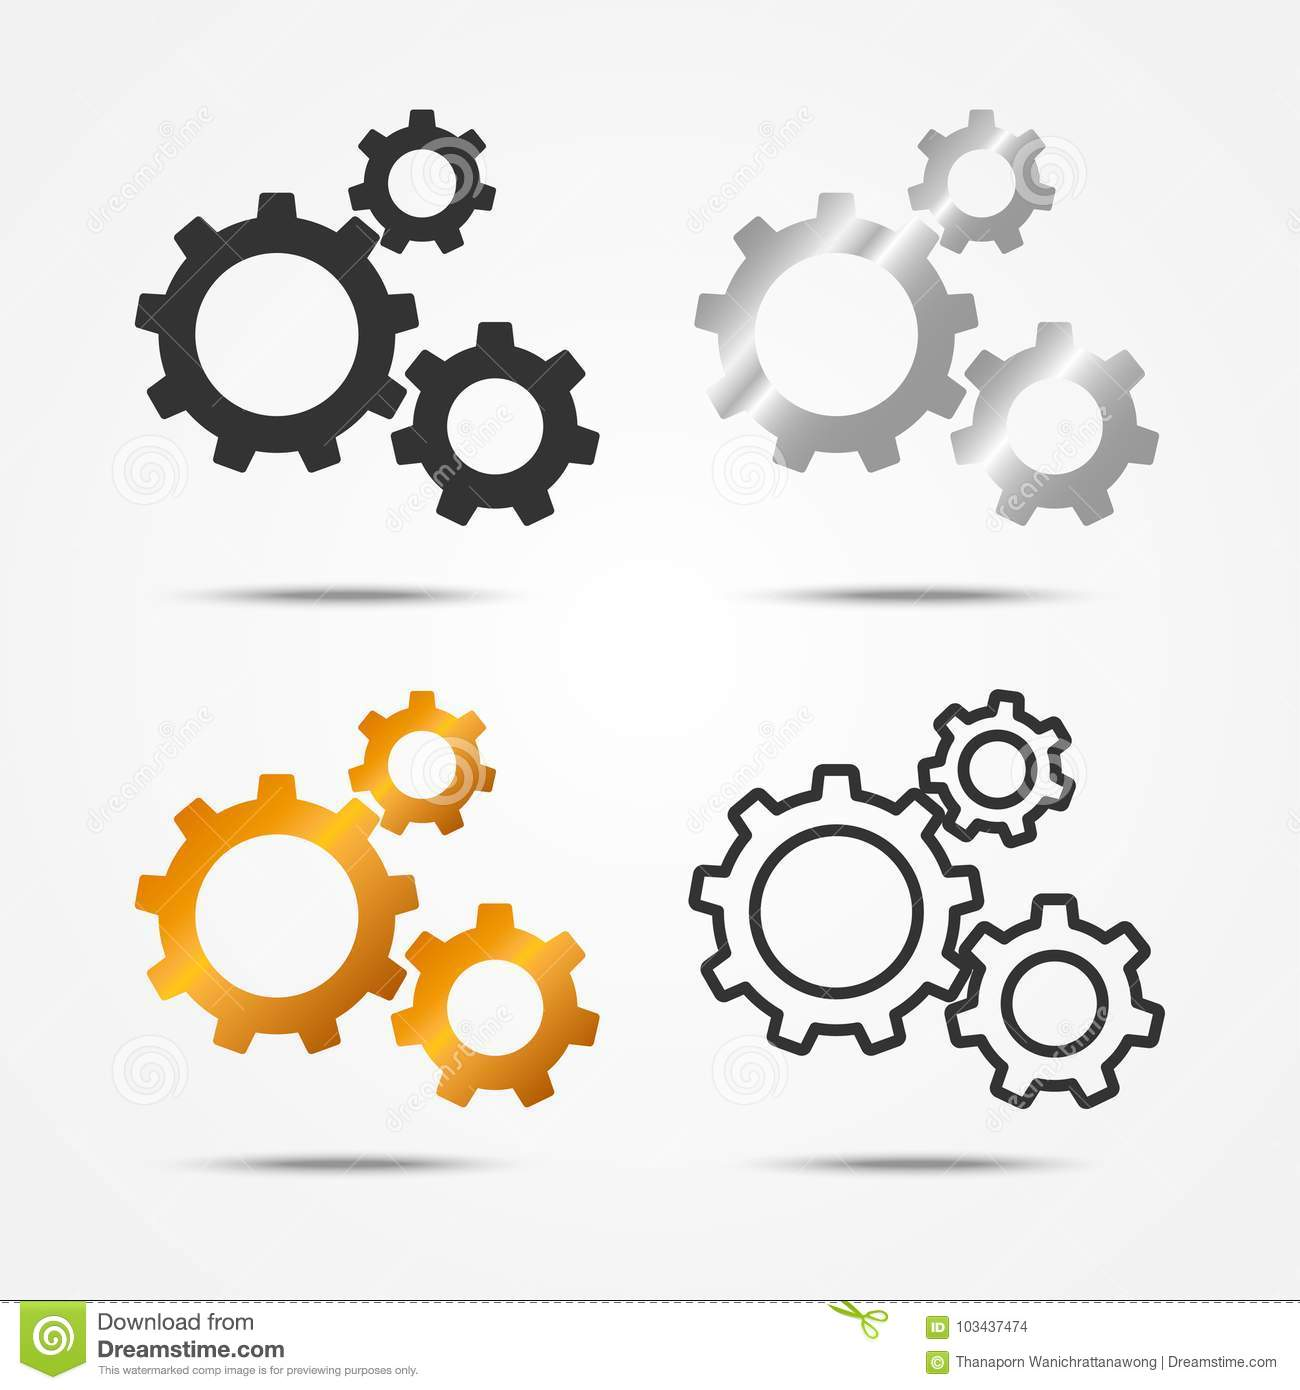 Set of black, gray, silver and gold 3 gears or cogs sign simple icon with shadow on white background